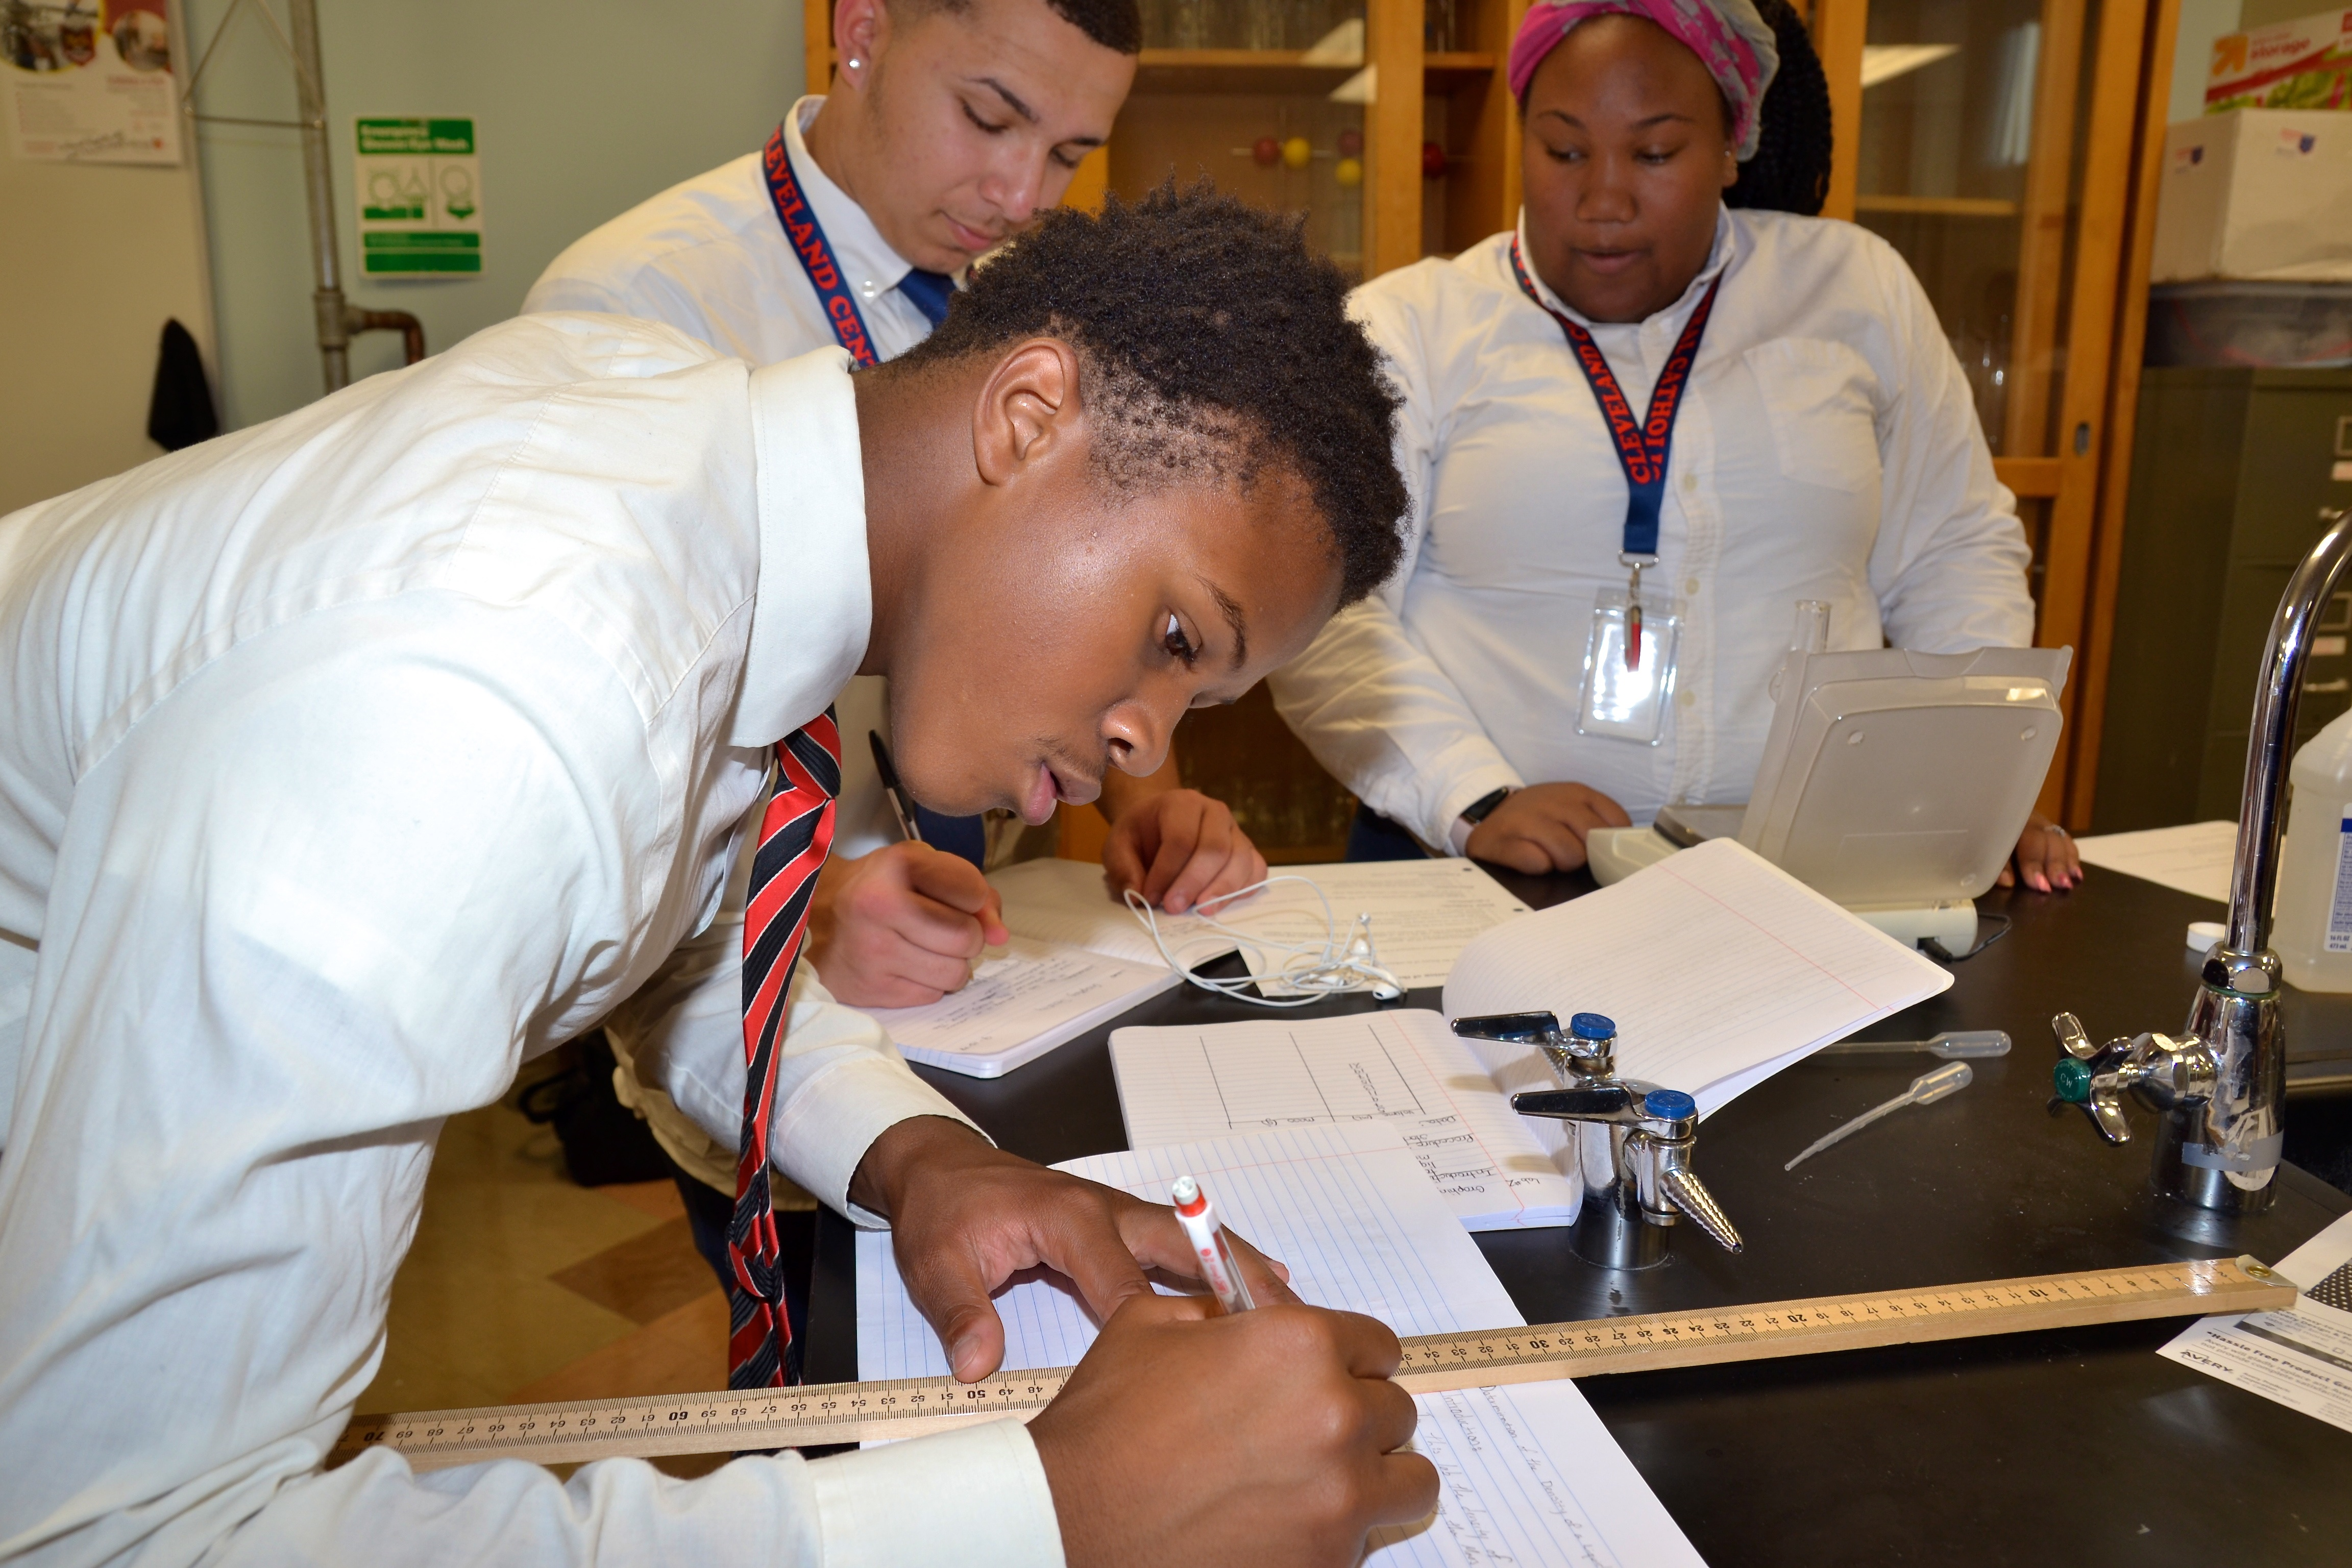 cleveland central catholic high school students in science lab